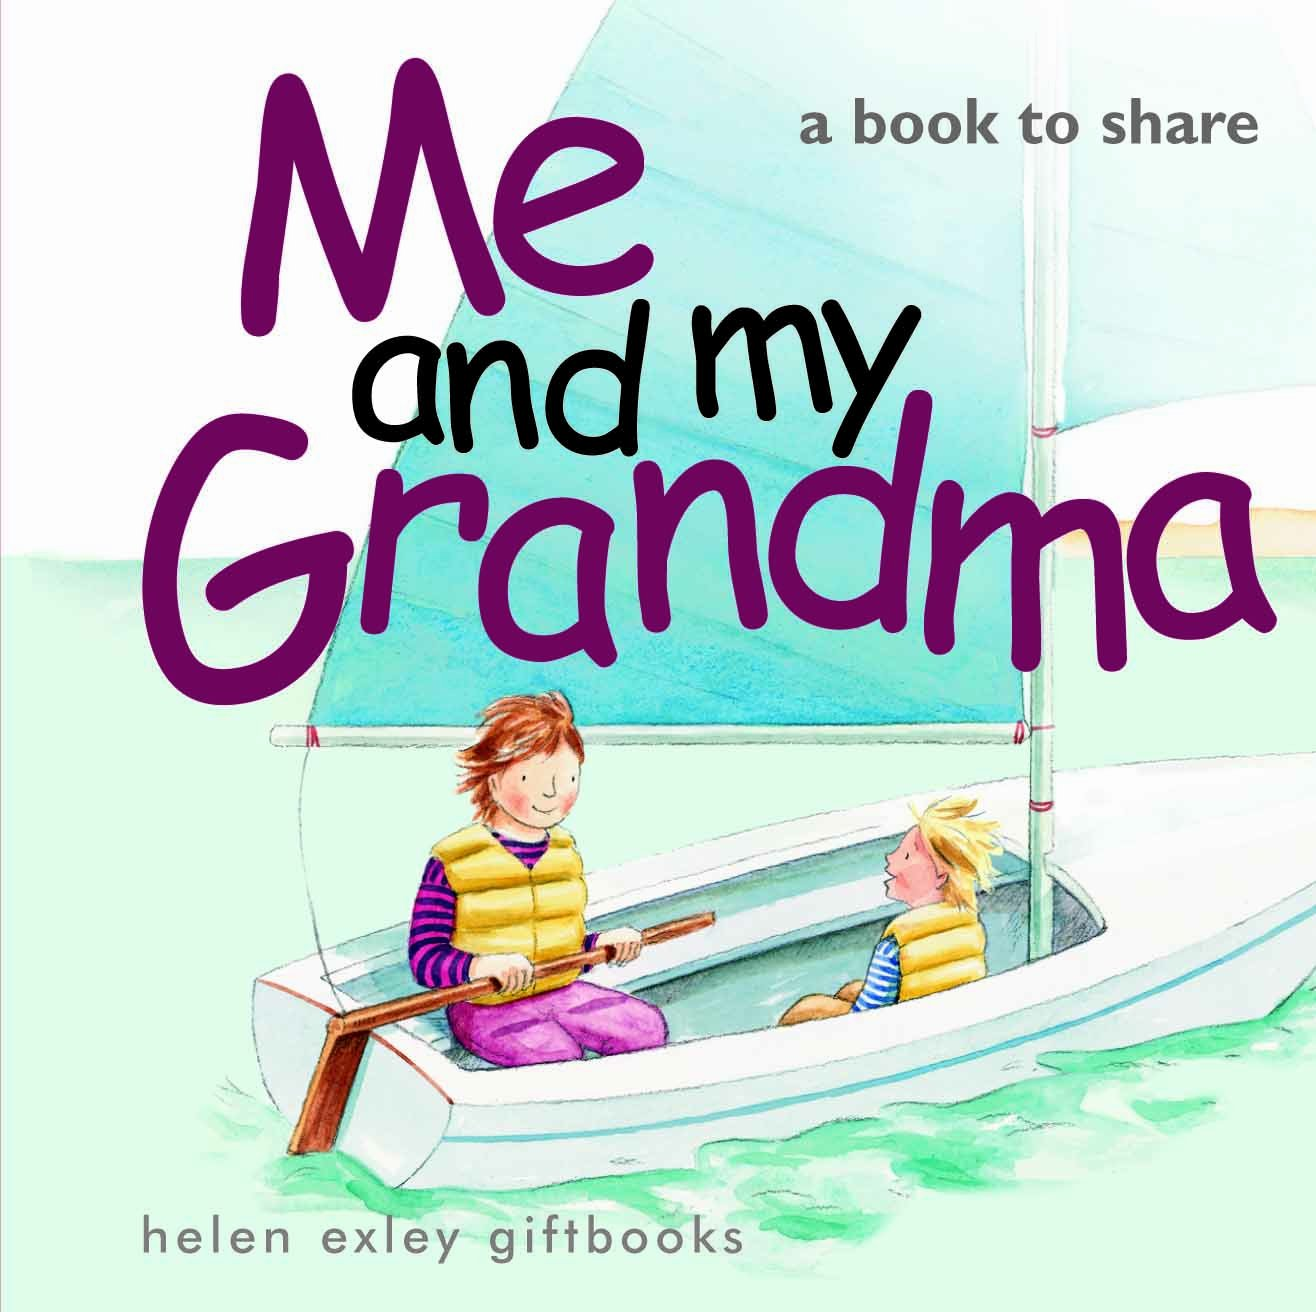 Me and my Grandma: 1 (Me & You Small)  - Hardcover